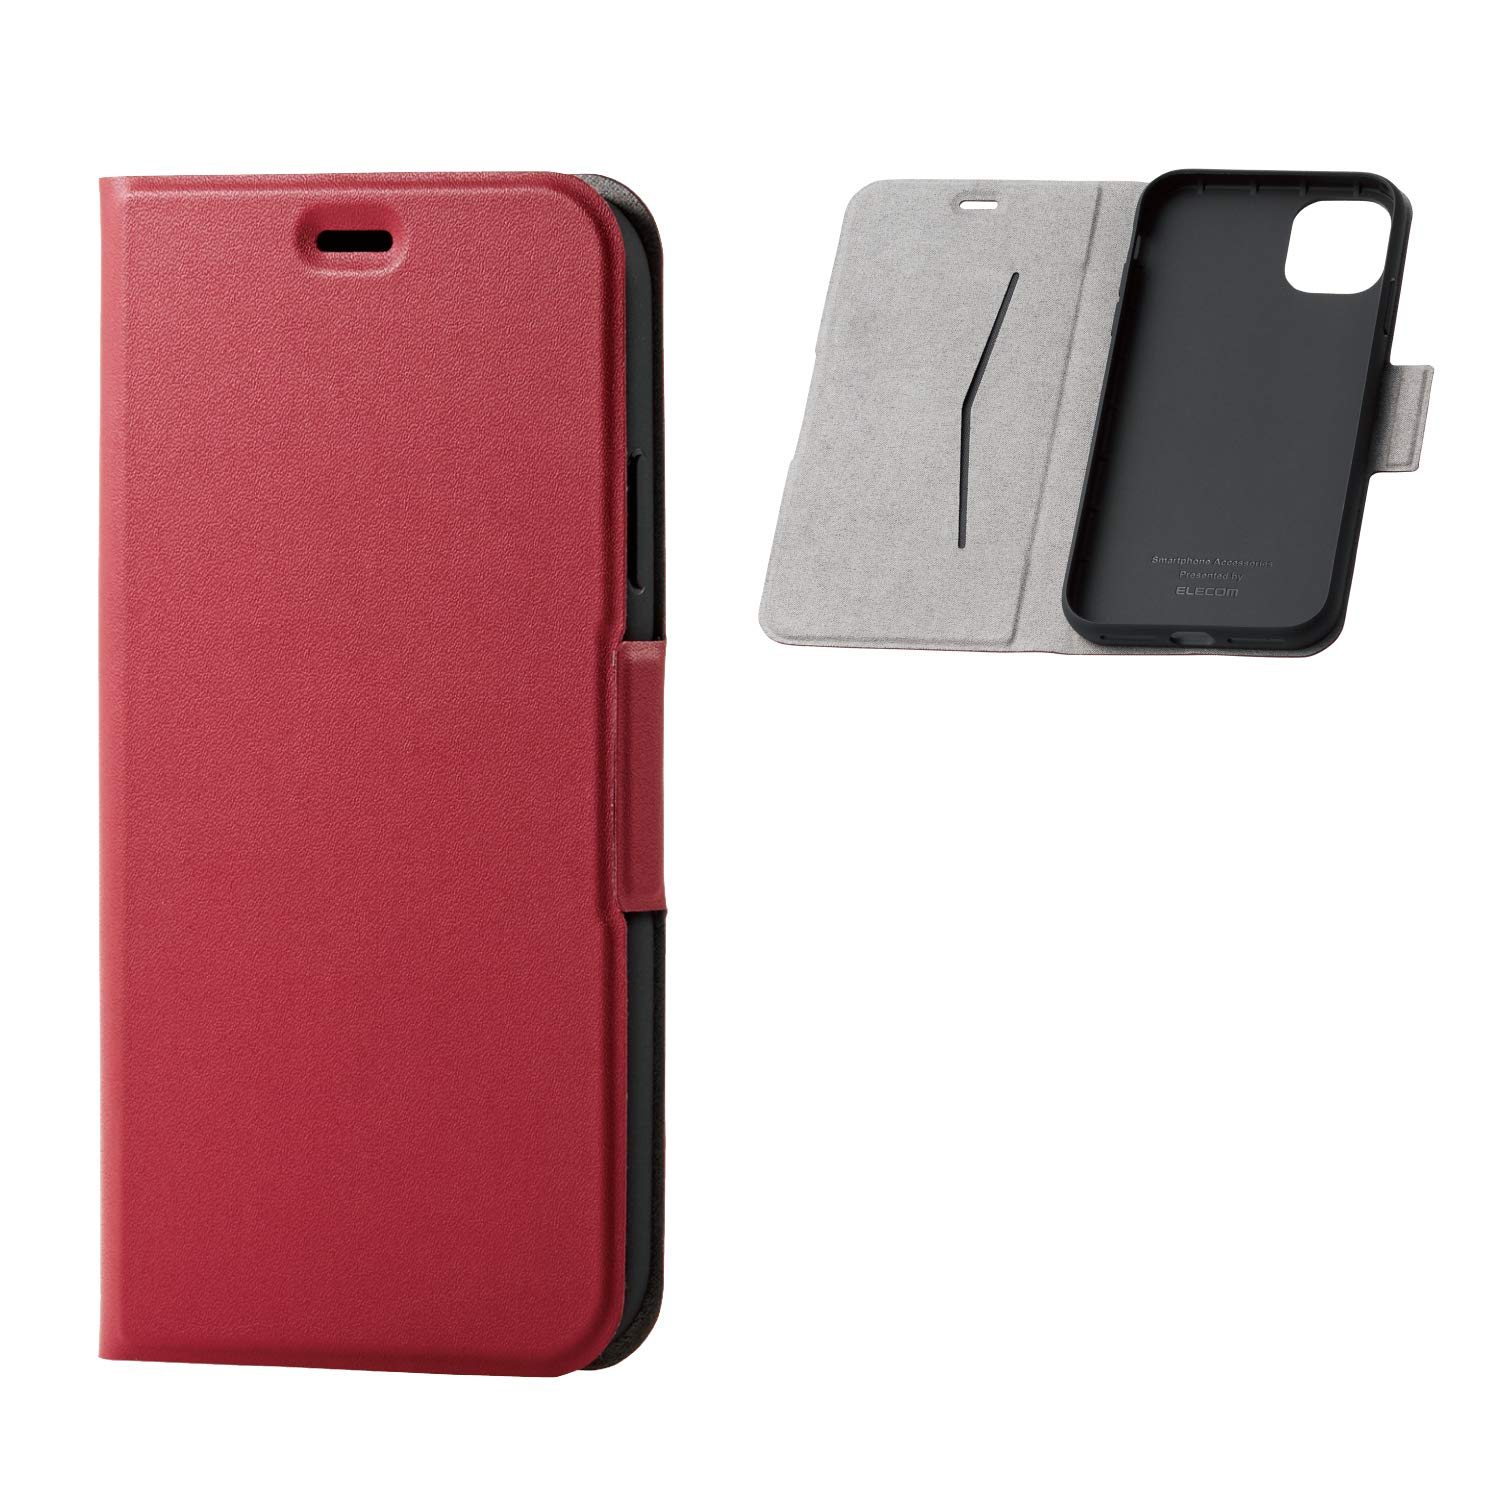 ELECOM-Japan Brand- PU Leather Flip Case Slim and Magnetic Type/Compatible with iPhone 11/ Red/PM-A19CPLFURD